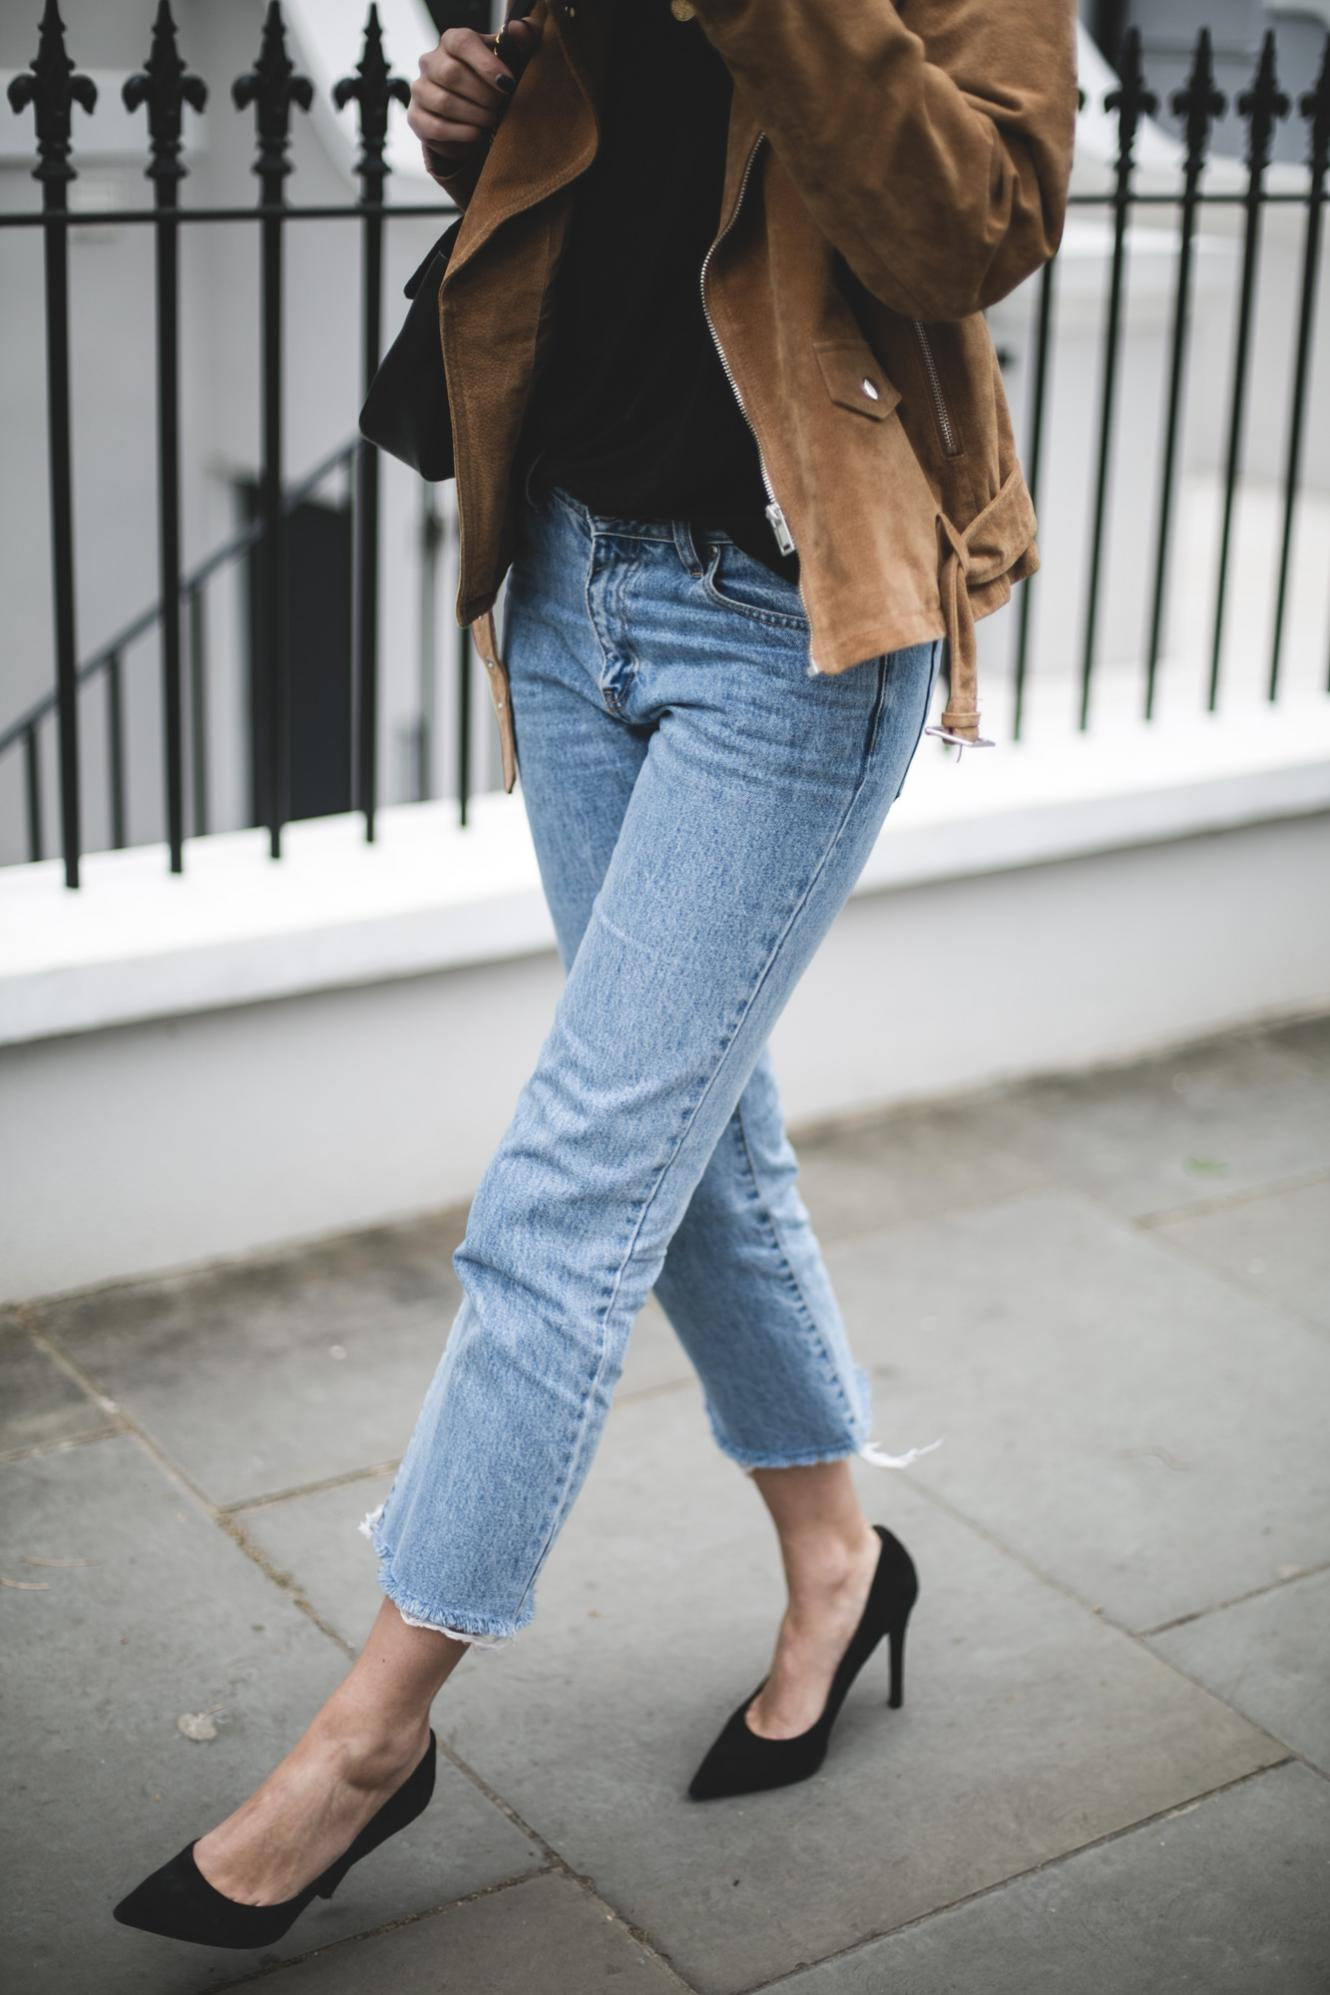 tan suede jacket, black t-shirt, raw frayed hem cropped jeans, suede court shoes